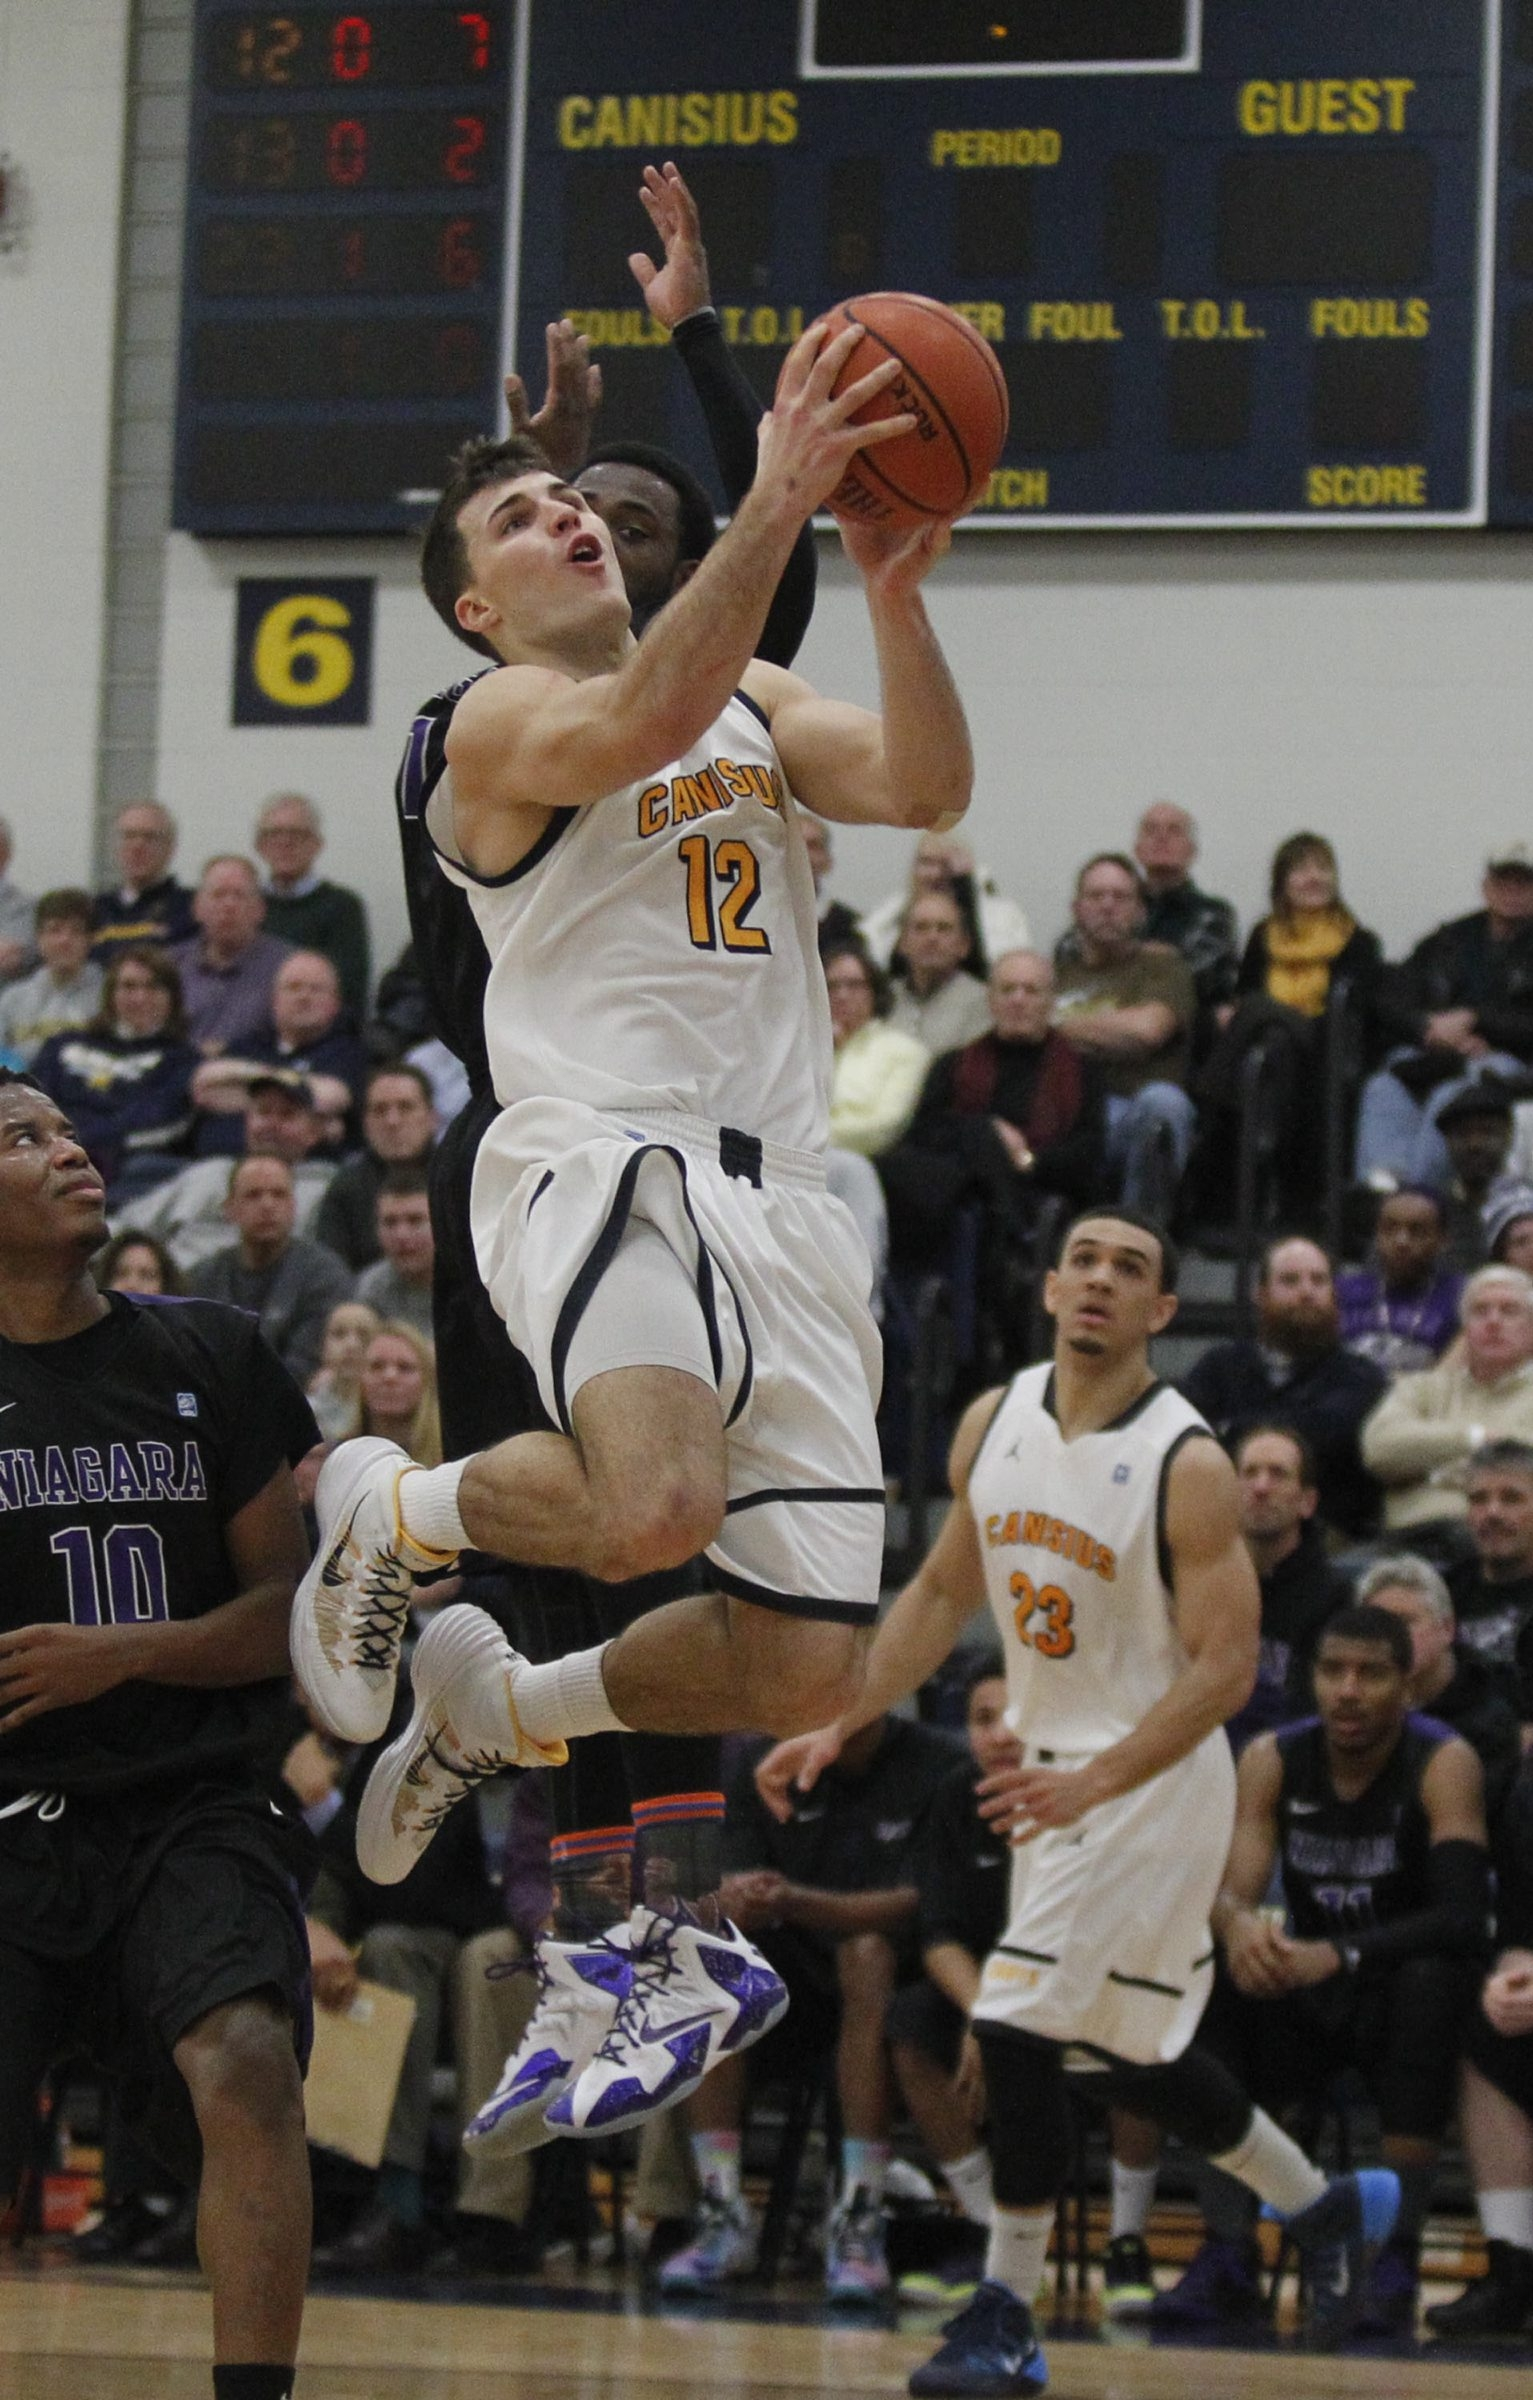 Billy Baron of Canisius goes up strong. Baron scored 31 points and withstood a bloody collision.